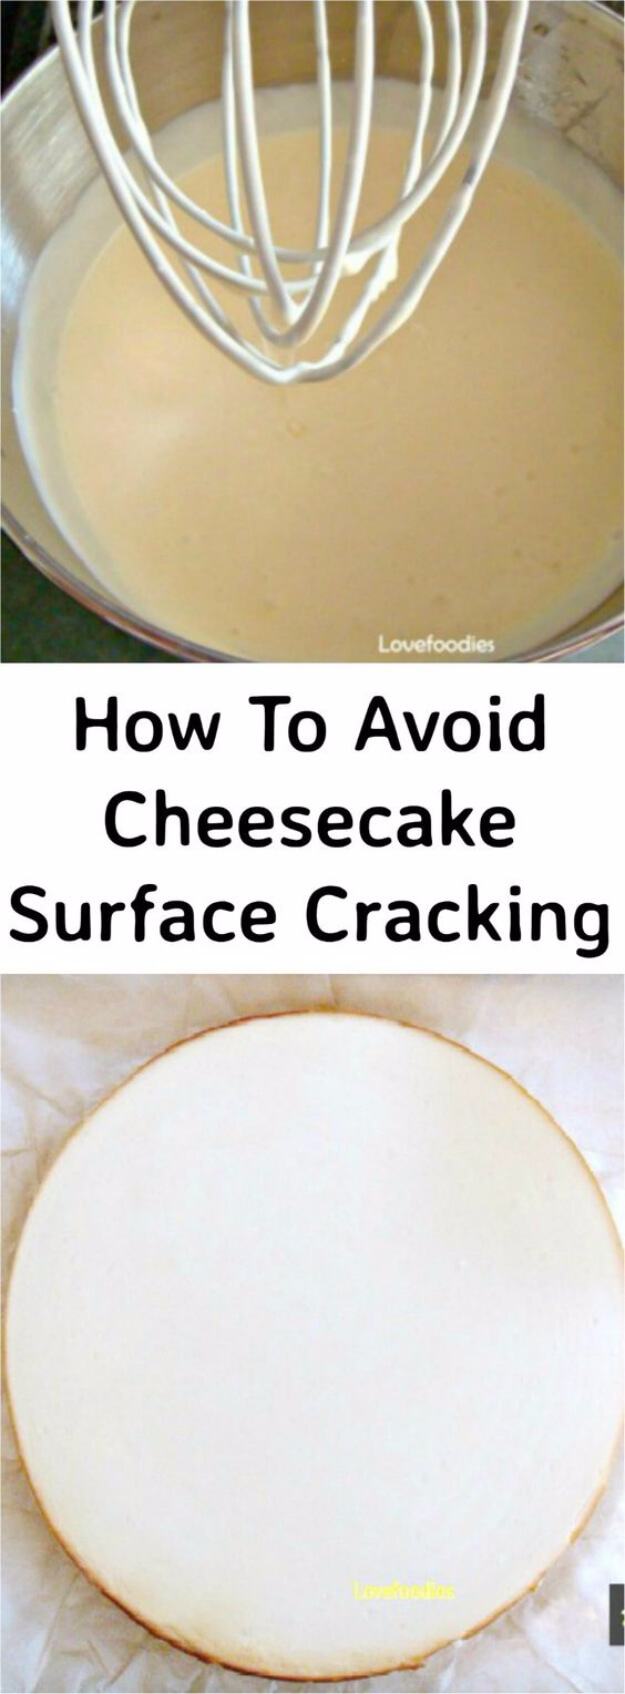 Avoid Cheesecake Surface Cracking